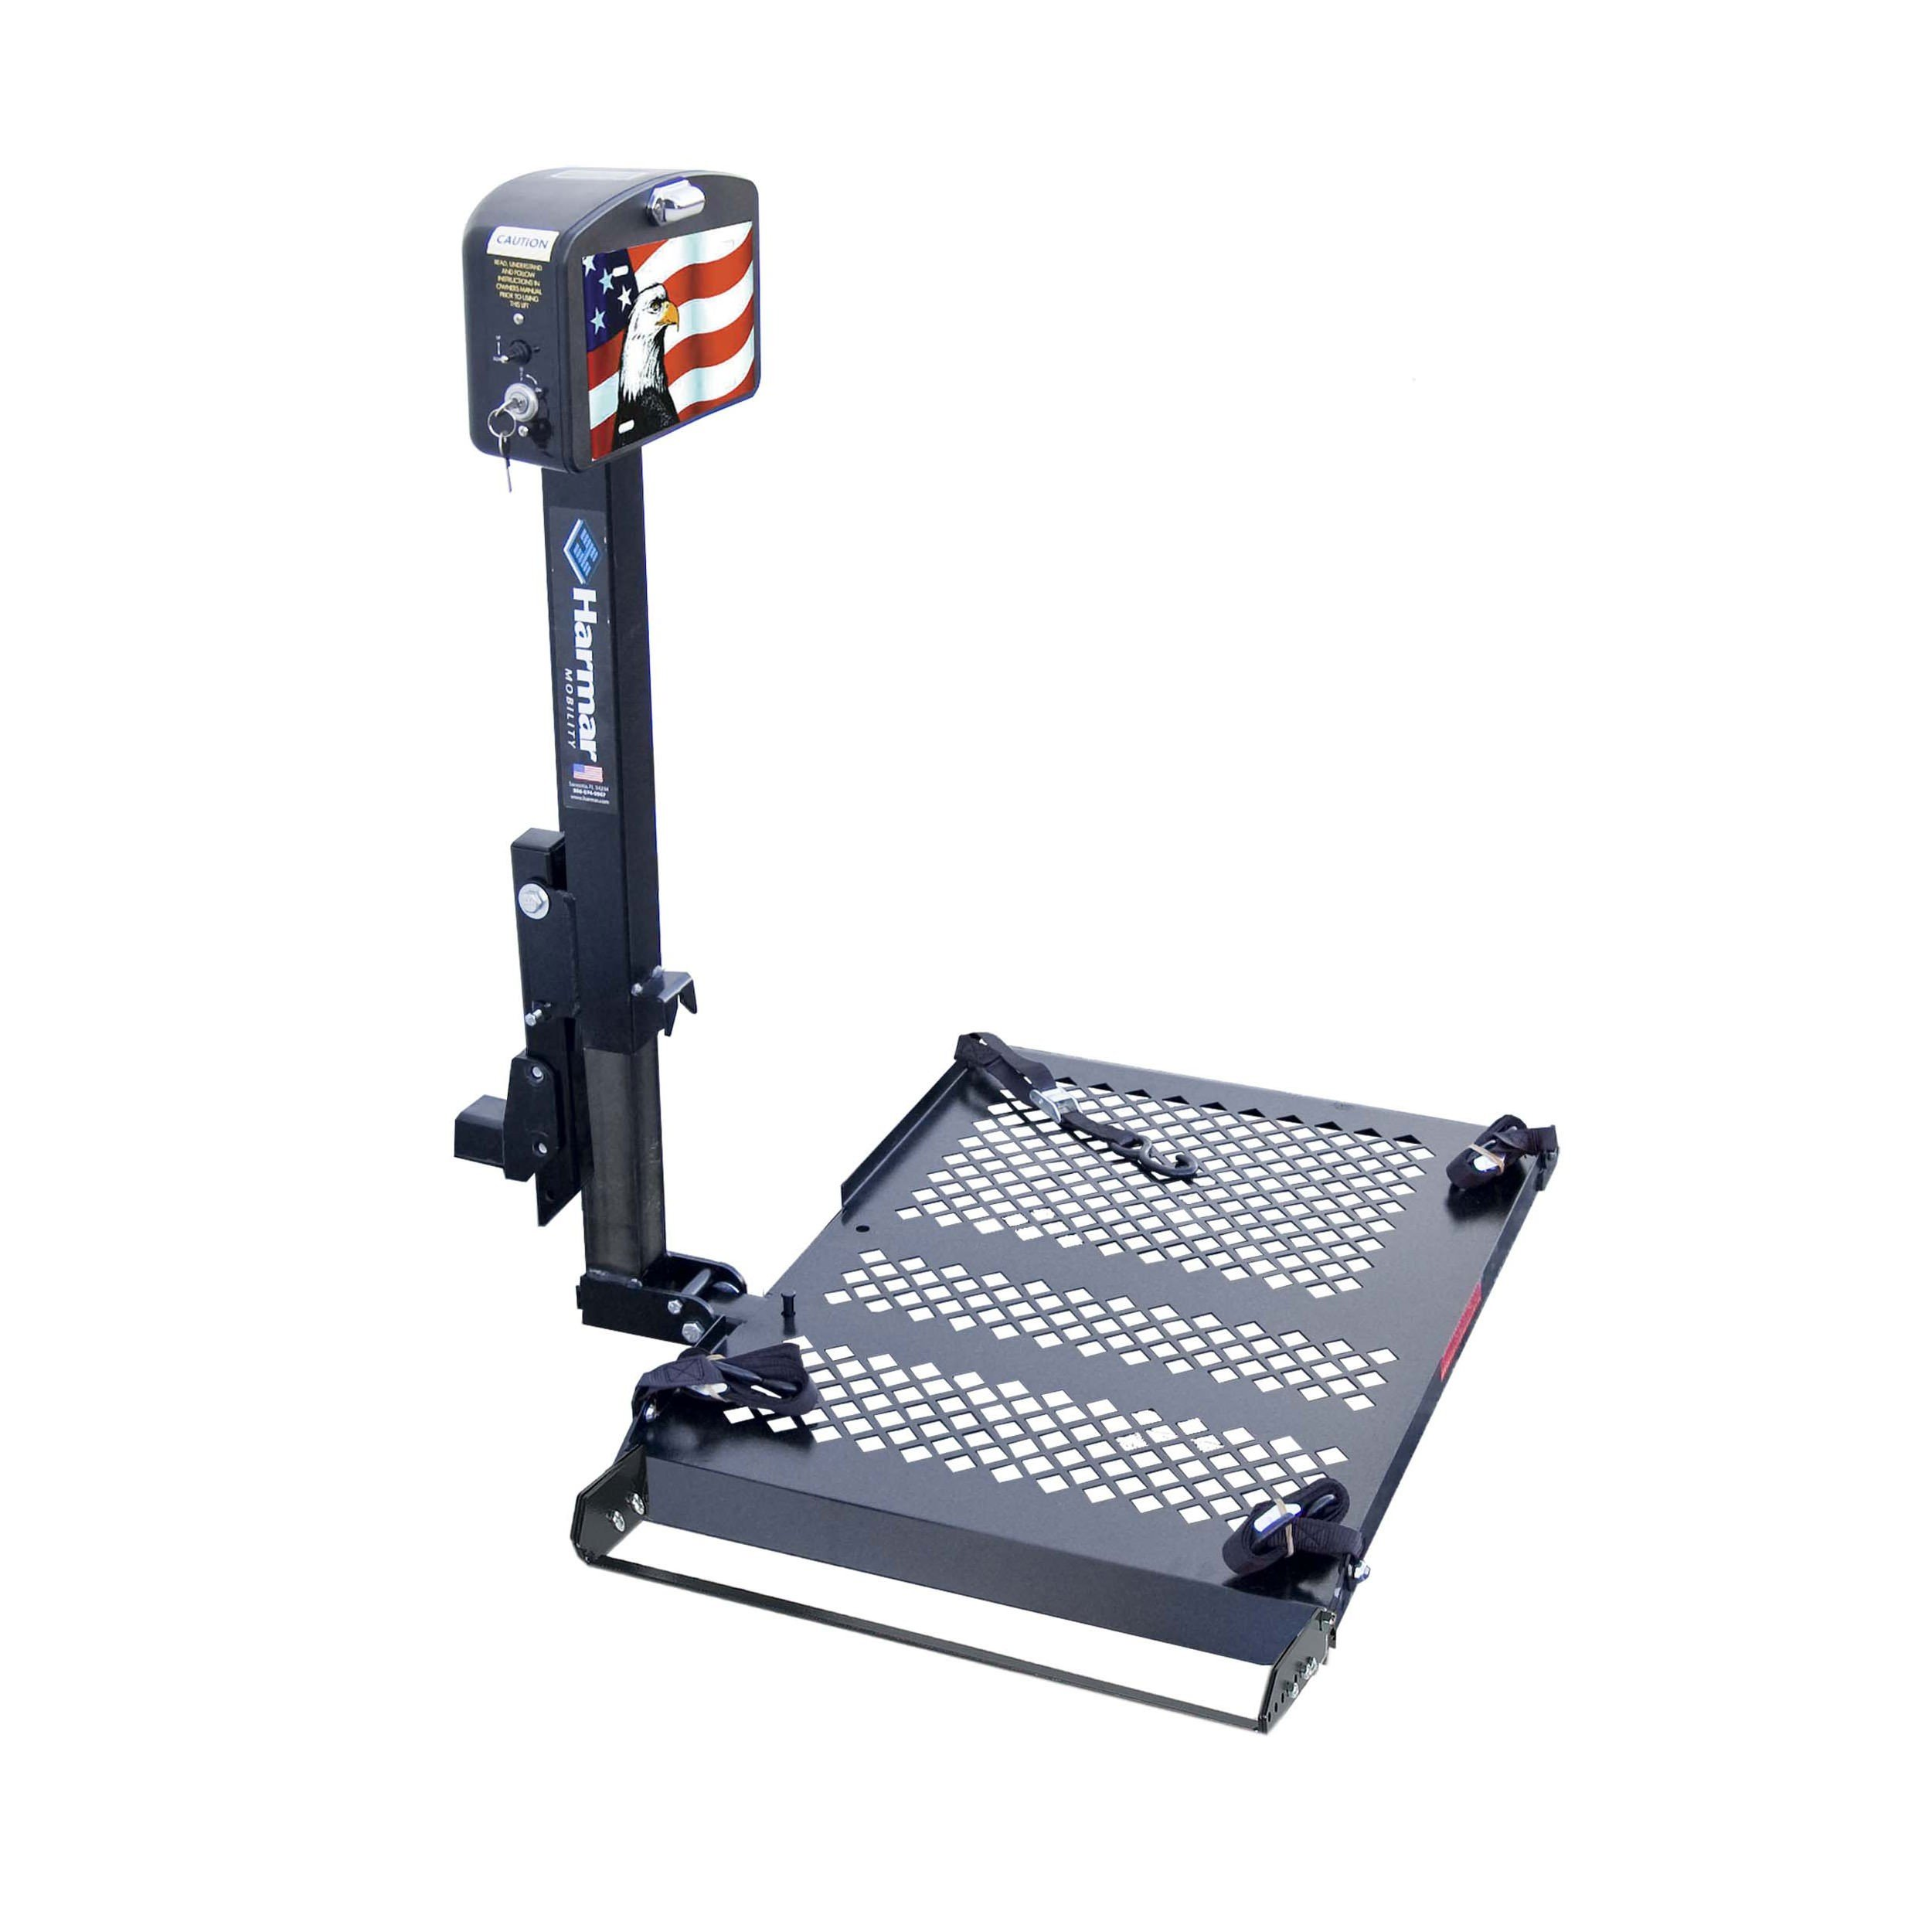 Harmar Mobility AL010 Micro Power Wheelchair Lift Outside Fully Automatic Carrier with II/III Hitch Adapter & Wiring Harness & Swing-Away Arm